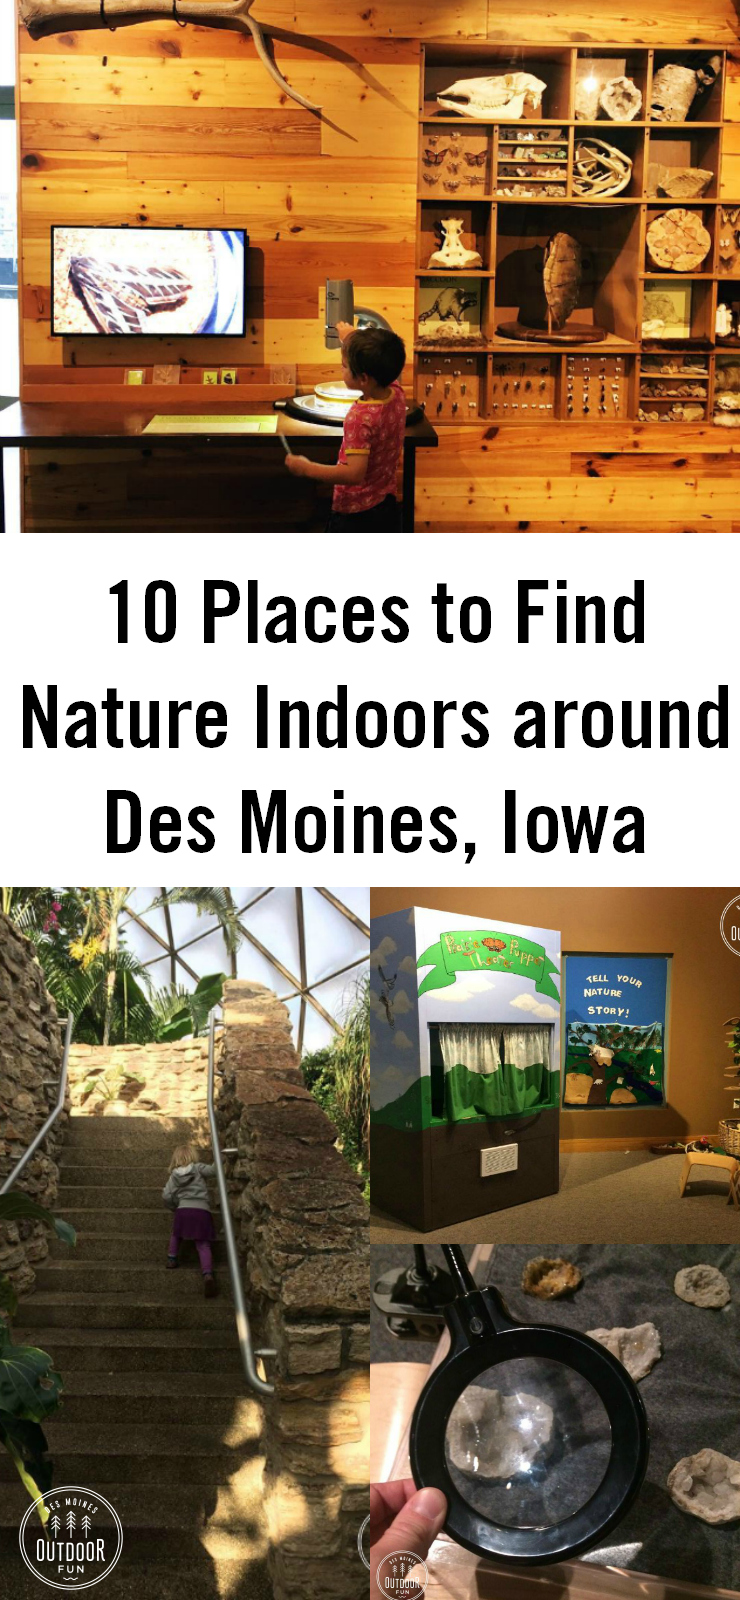 10 Places to enjoy nature and stay indoors, in the Des Moines, central Iowa area.